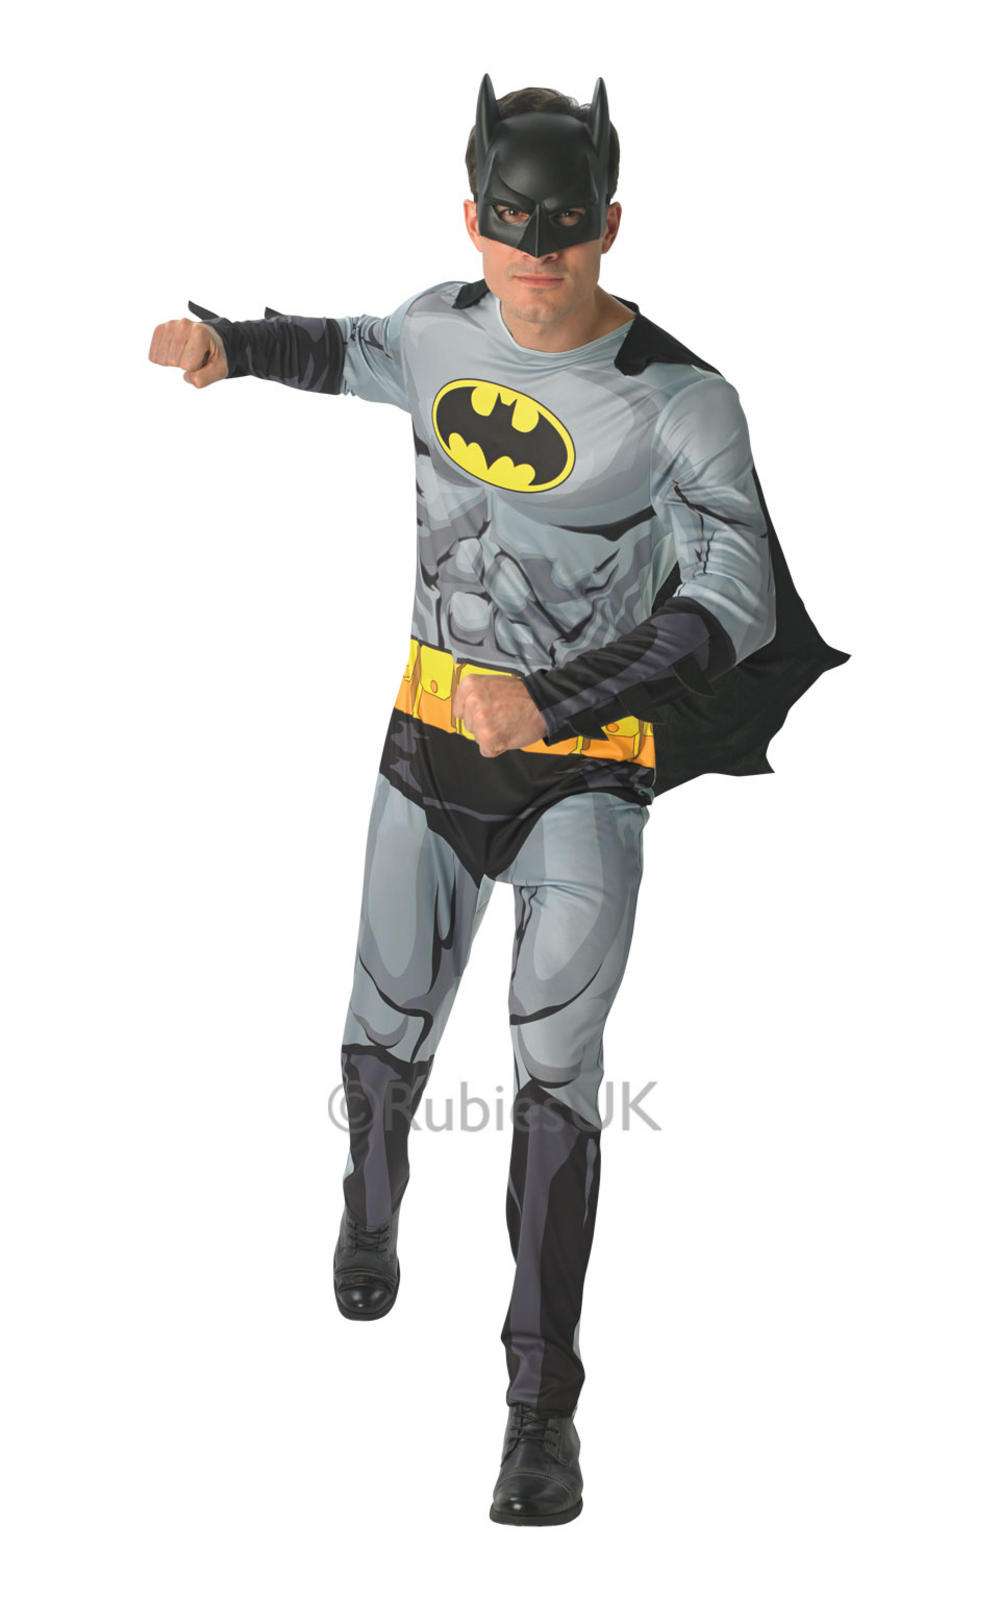 Comic Book Batman Costume